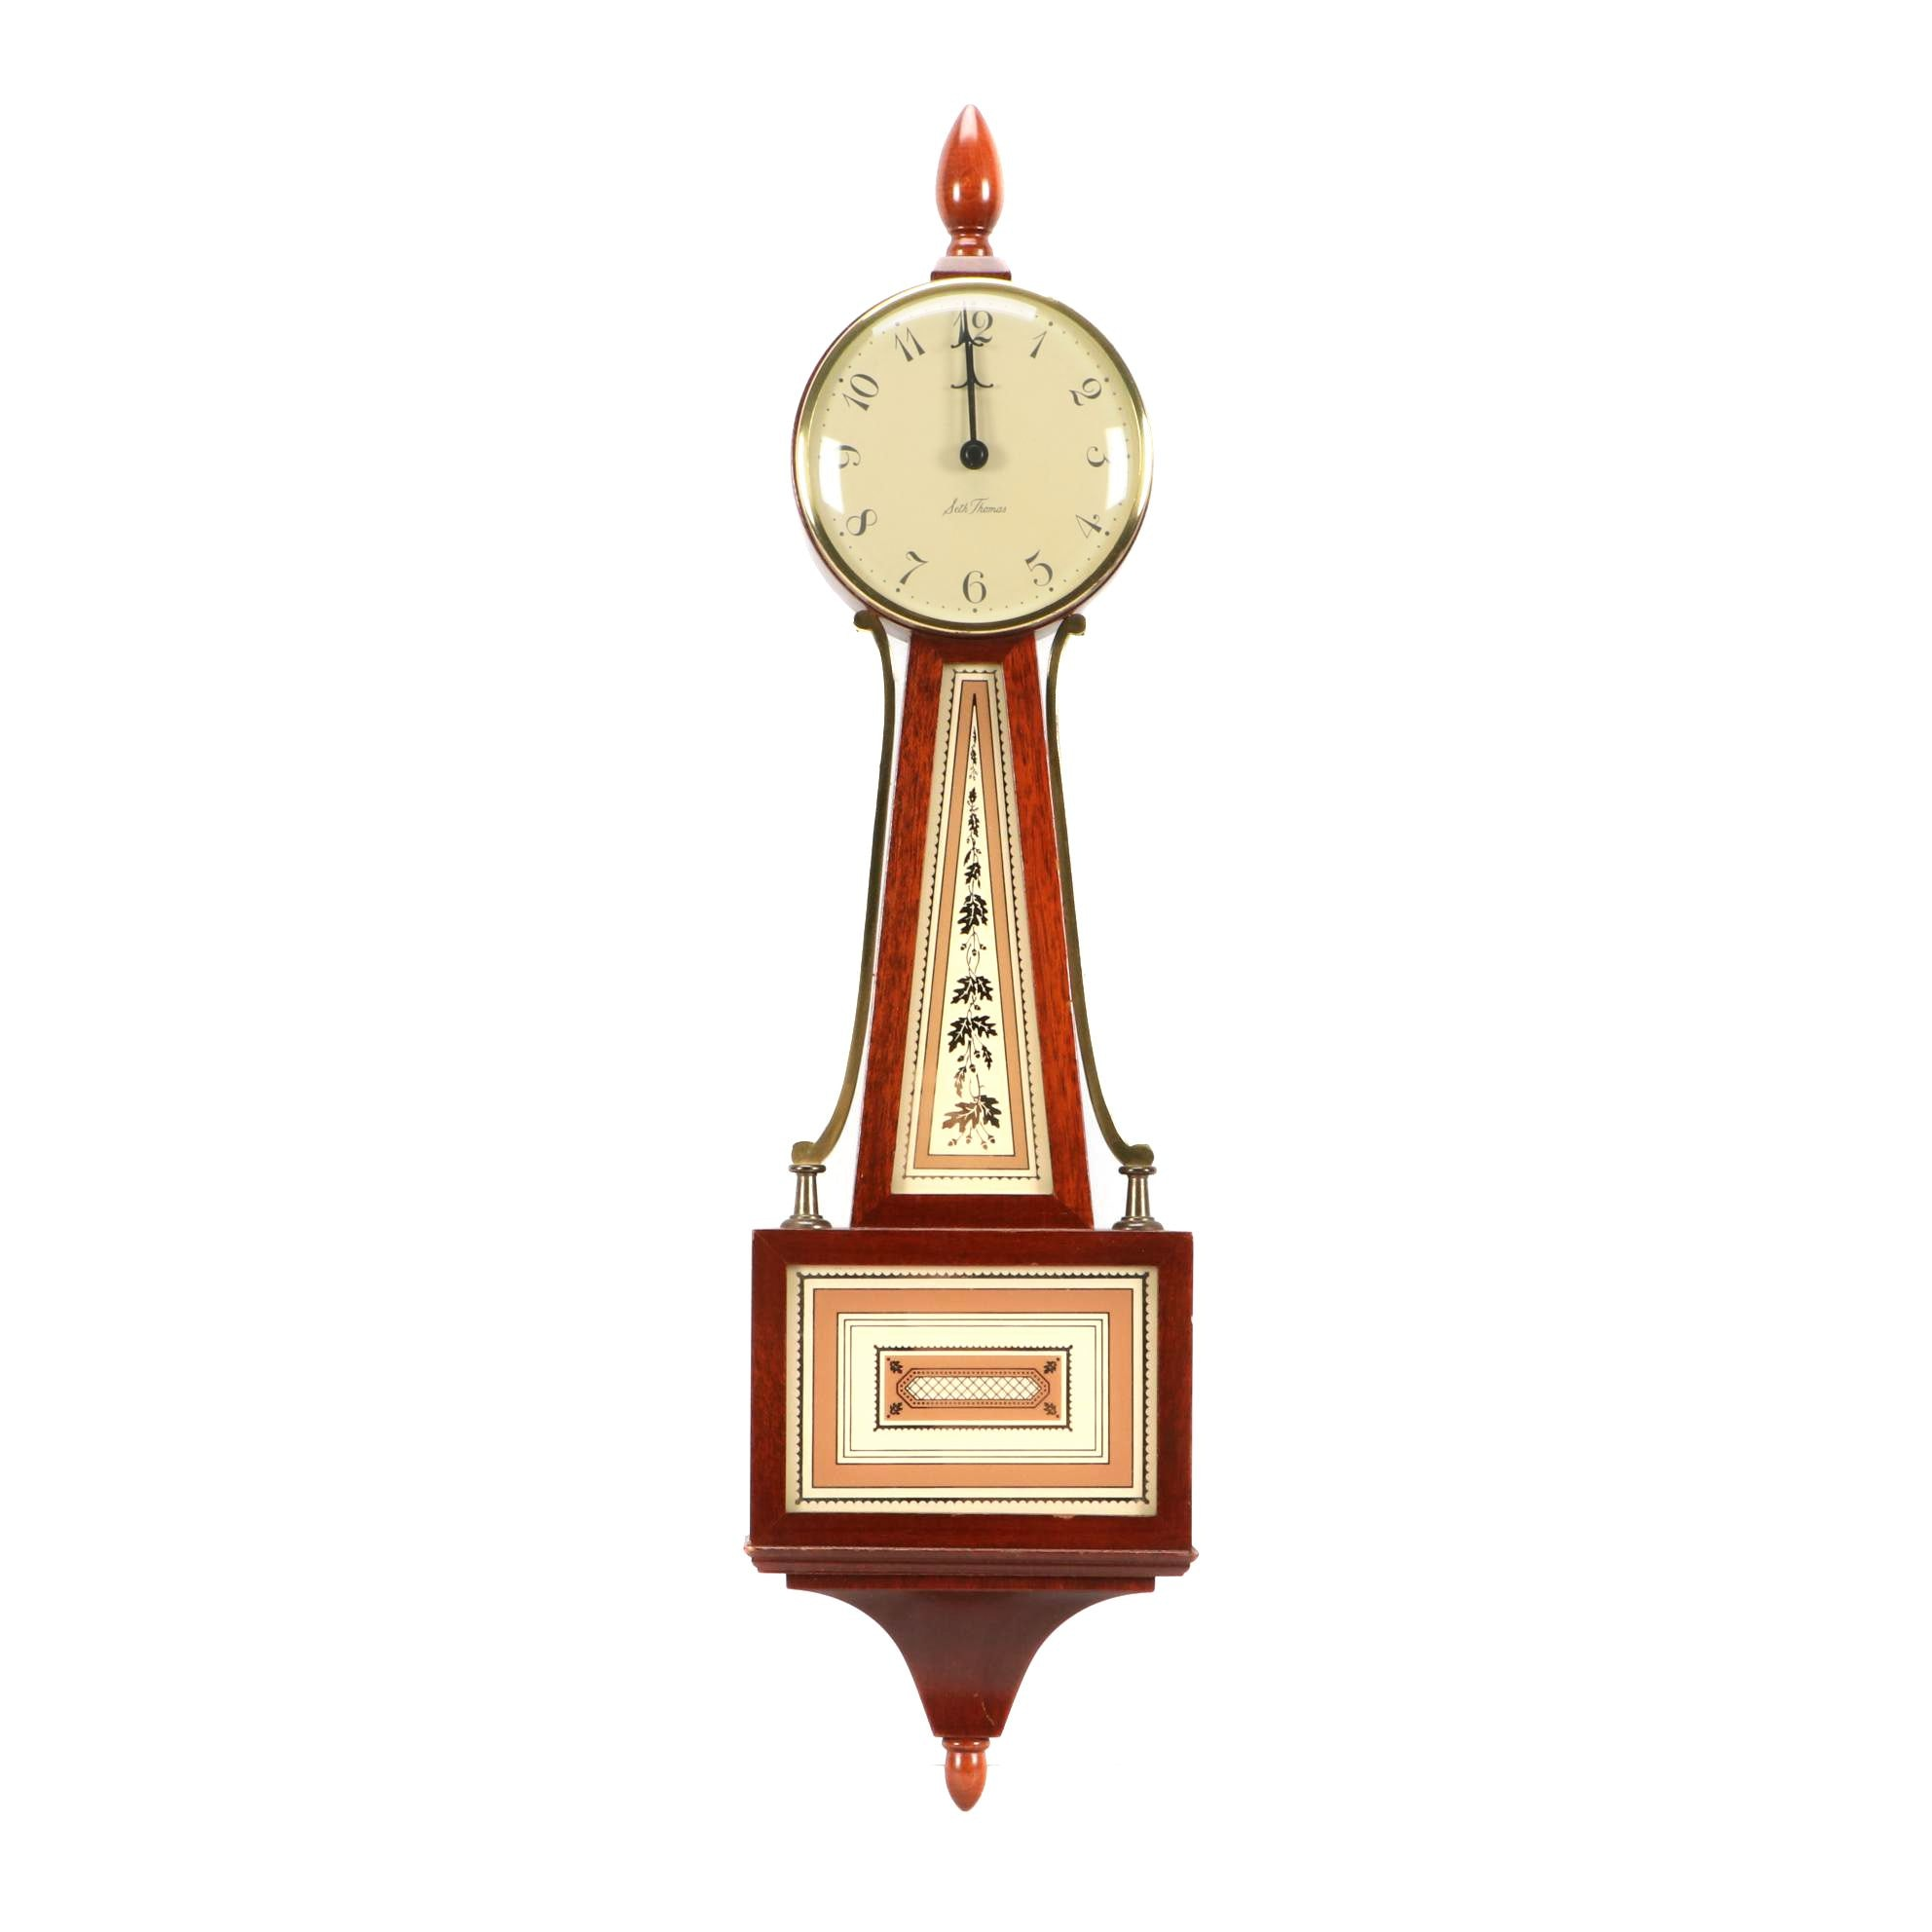 Vintage Banjo Clock by Seth Thomas